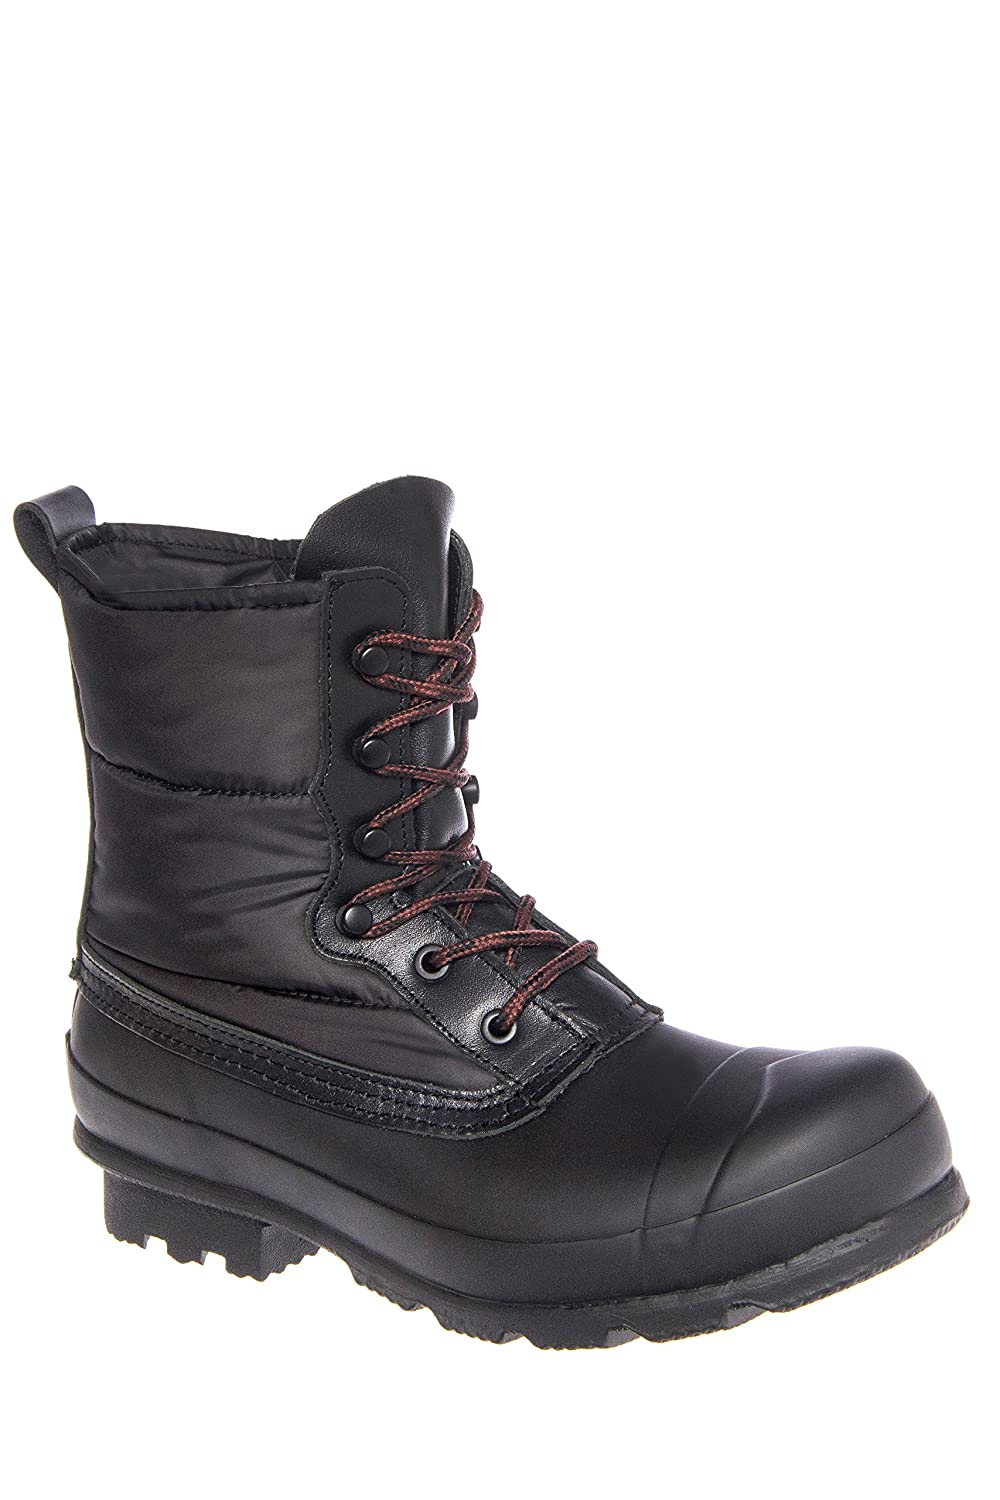 Hunter Boots Quilted Lace Up Snow Boots Black